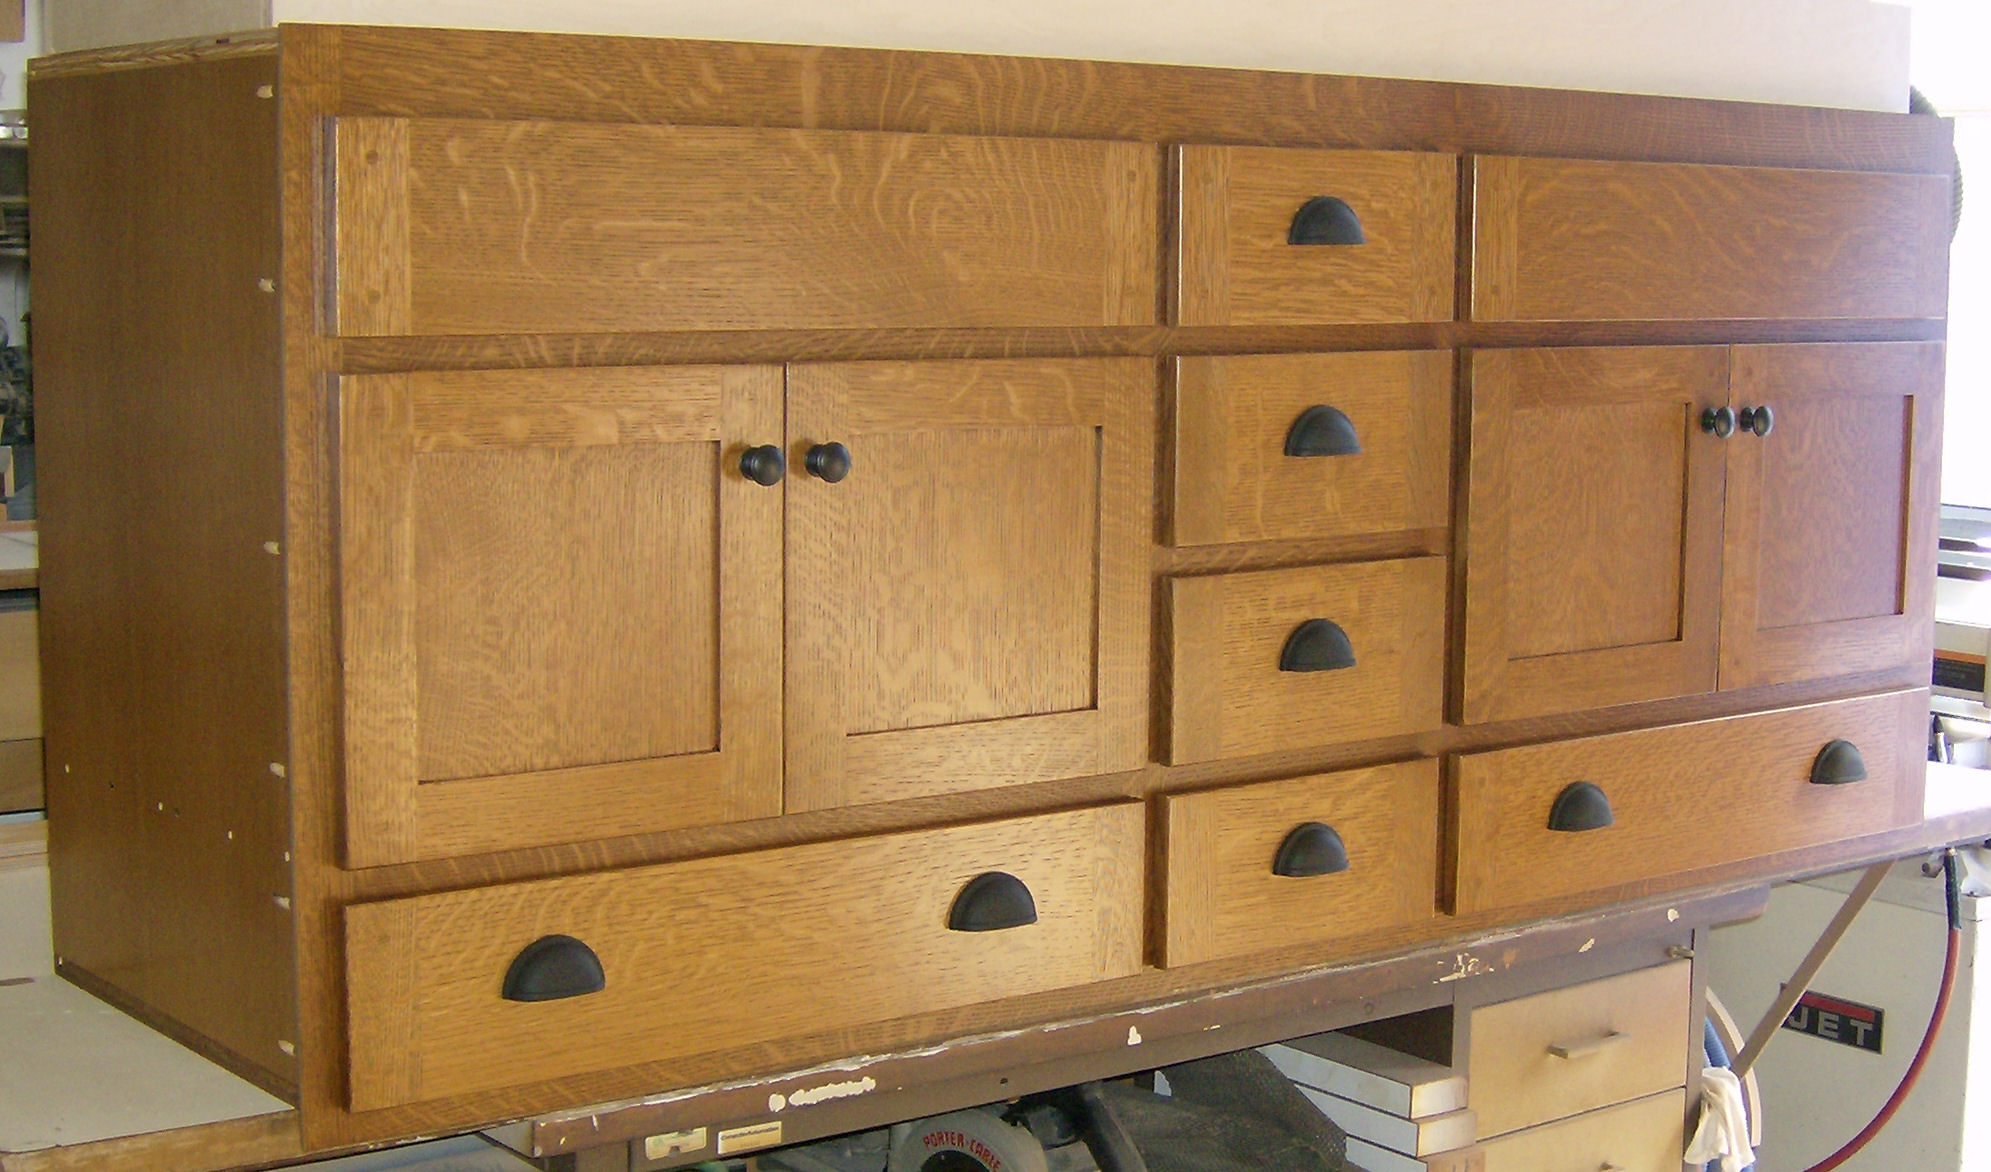 Heart Of Oak Workshop, Authentic Craftsman U0026 Mission Style Built In Cabinets